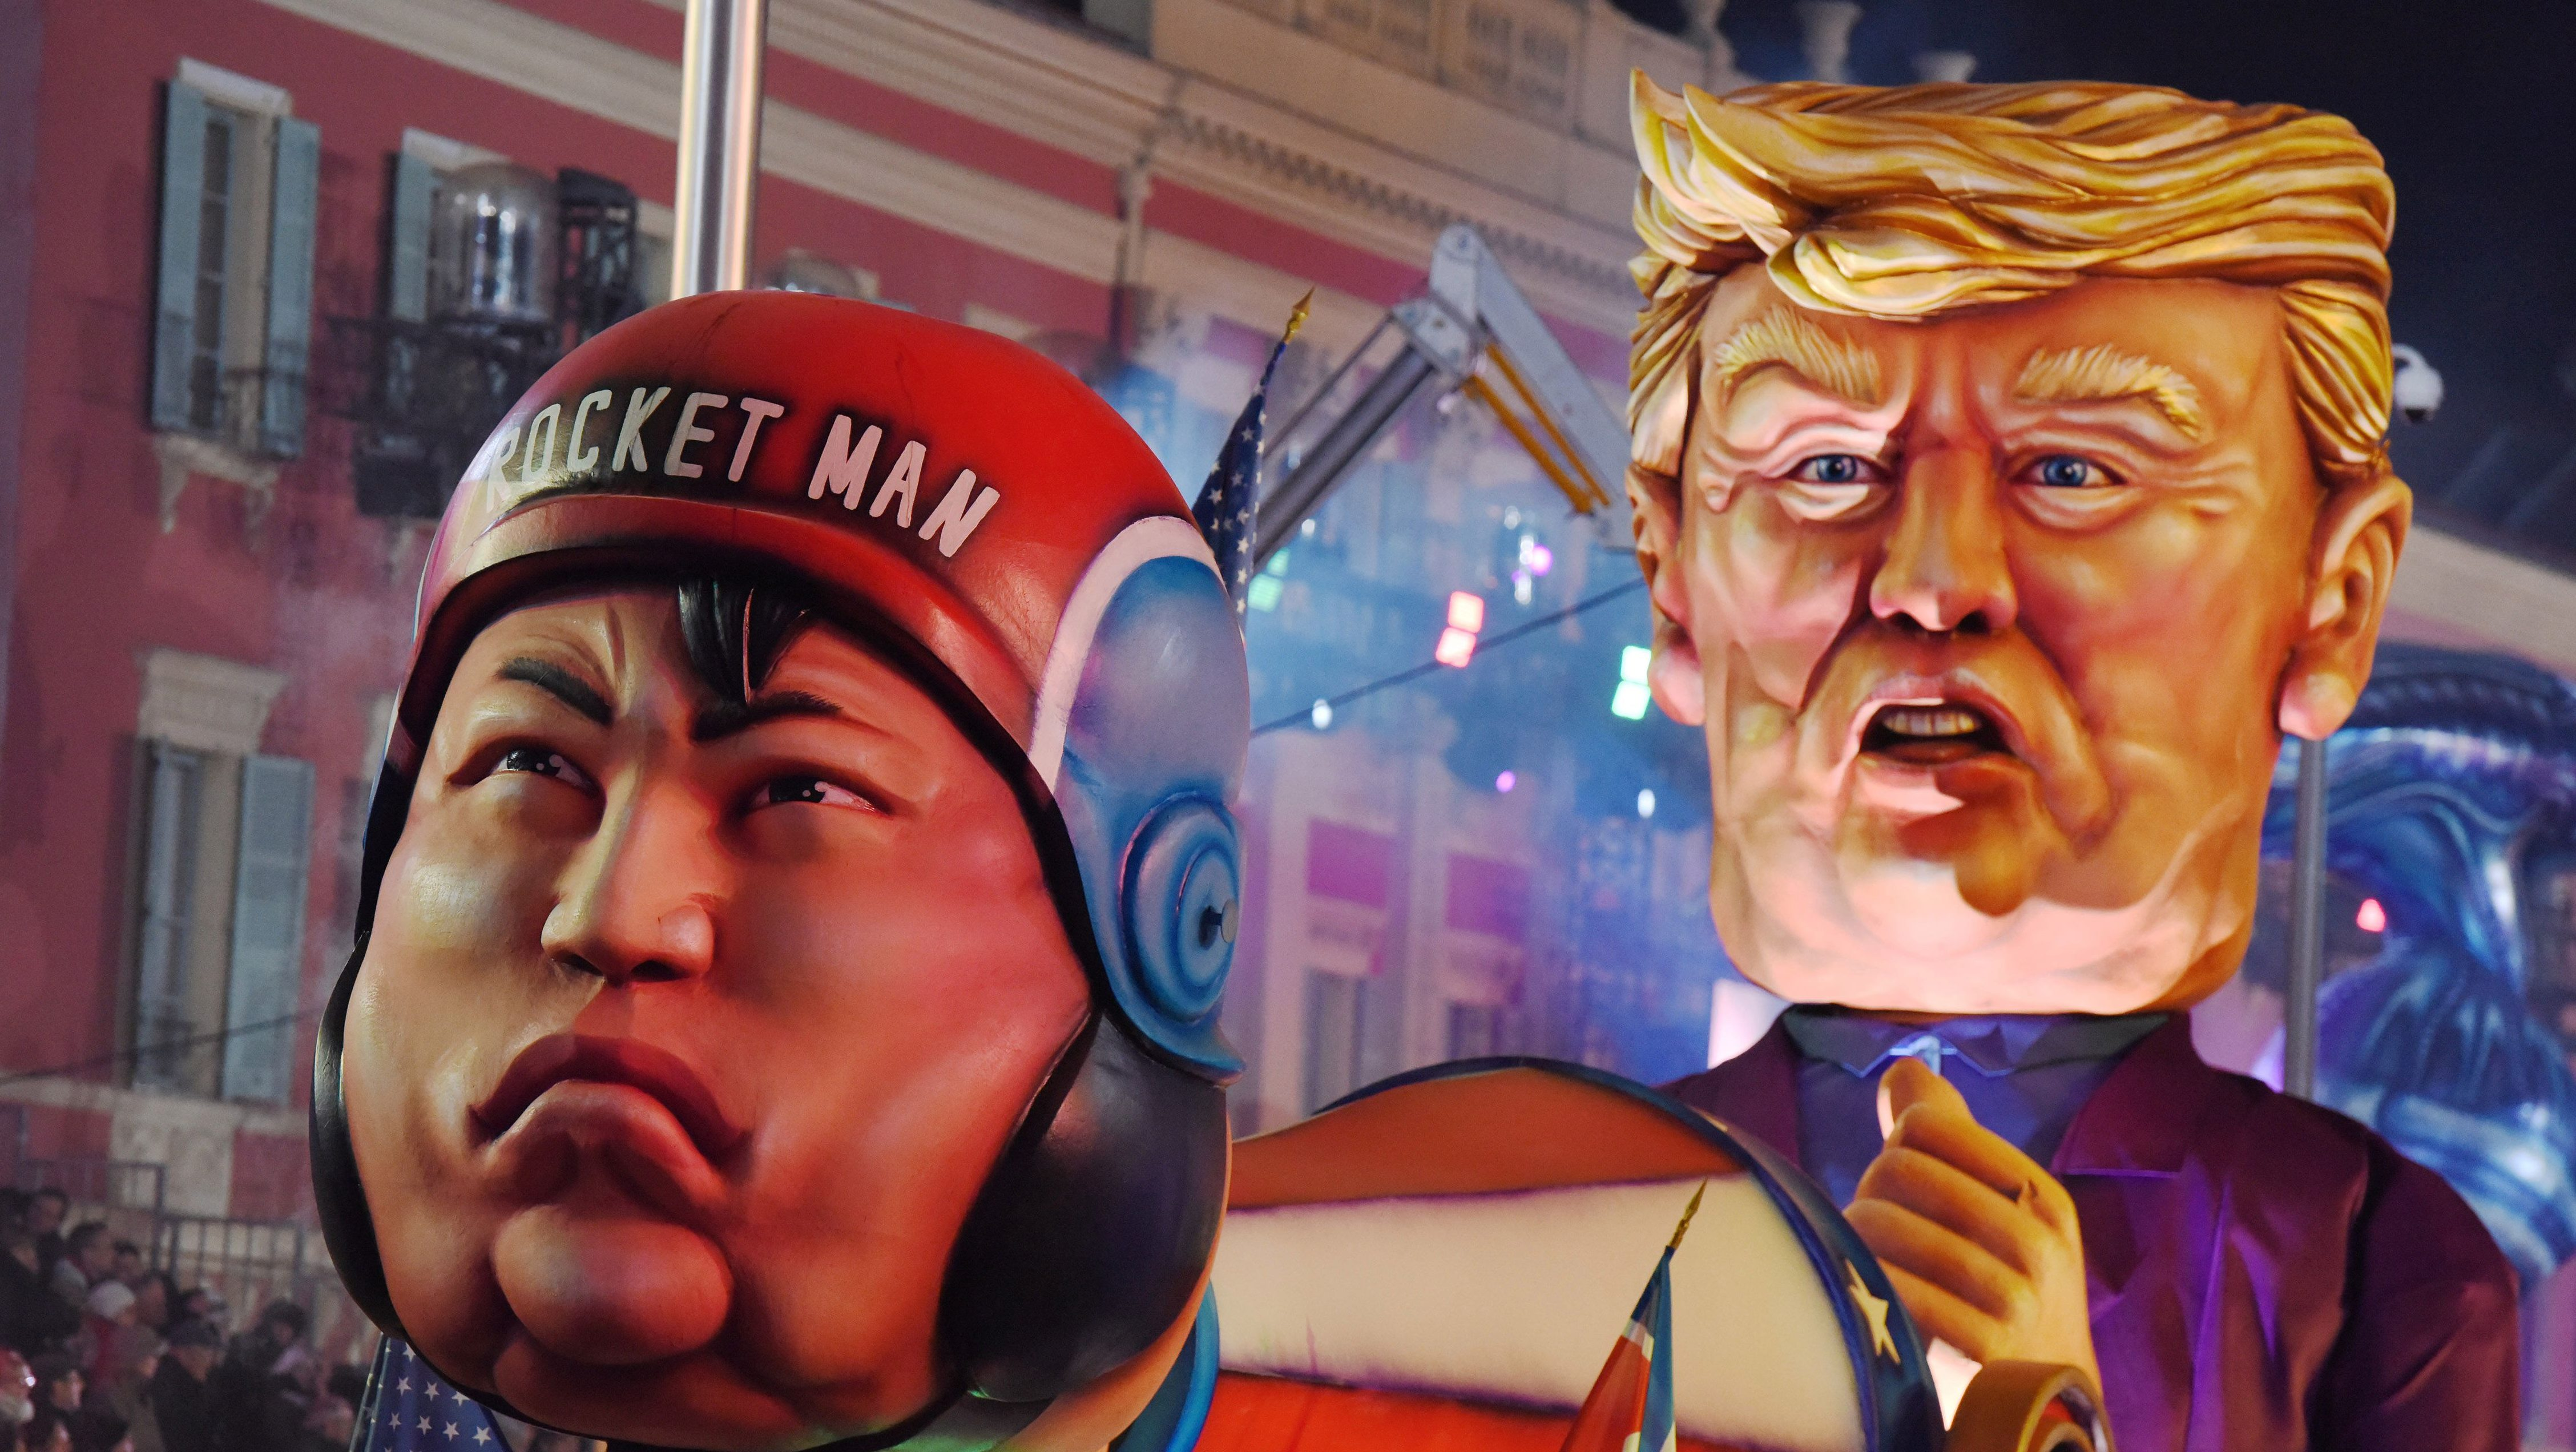 A float with effigies of North Korean leader Kim Jong Un and U.S. President Donald Trump is paraded through the crowd during the 134th Carnival parade in Nice, France February 20, 2018. REUTERS/Jean-Pierre Amet - RC1A29B94640